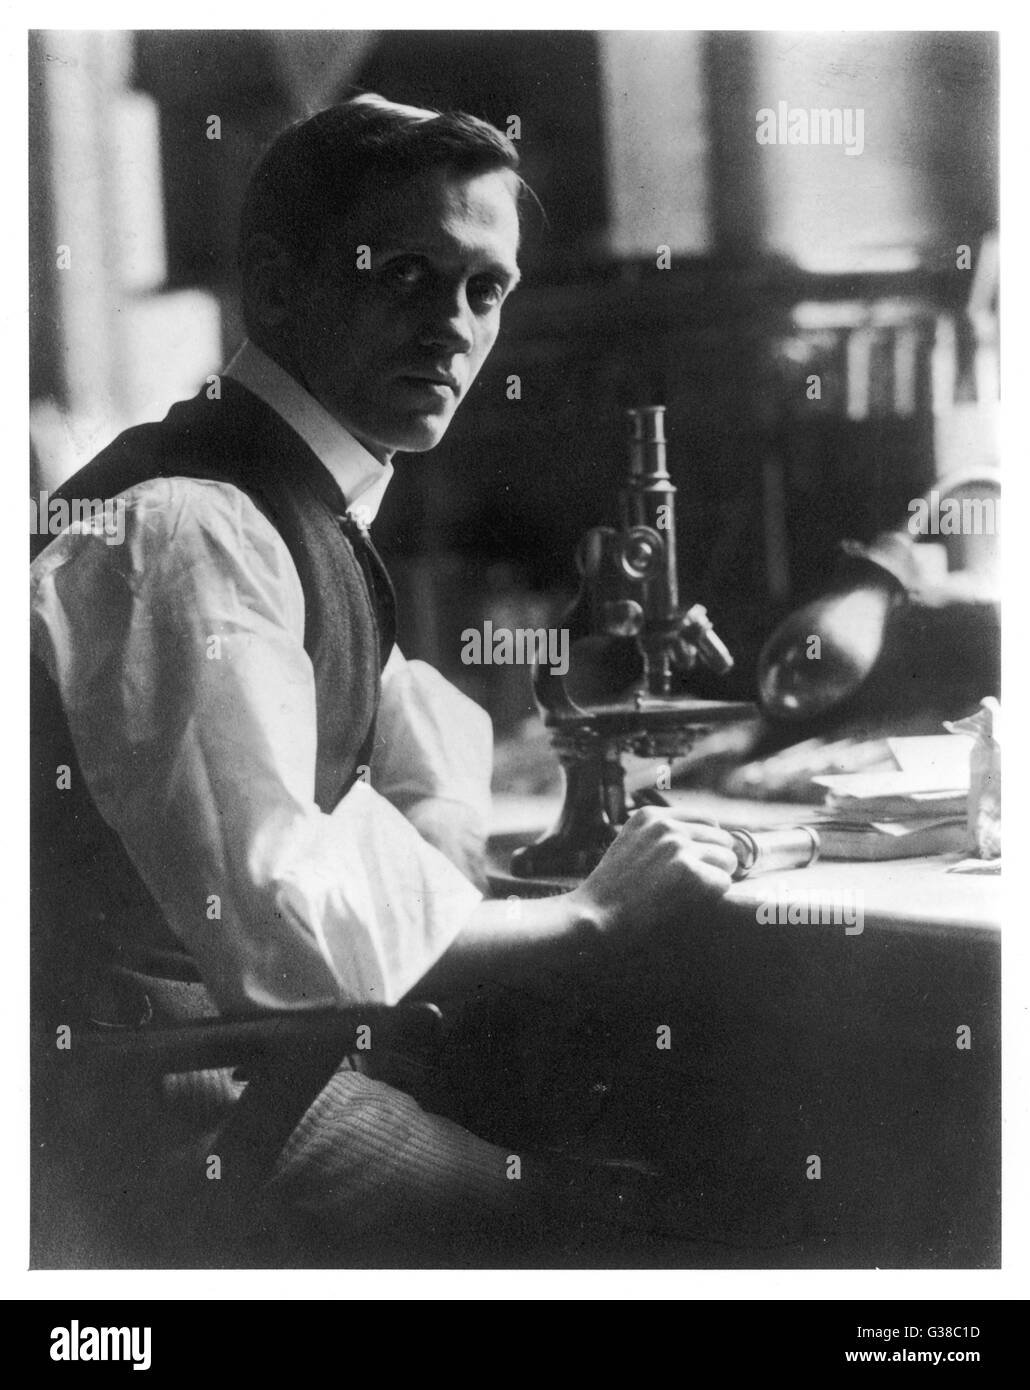 SIR ALEXANDER FLEMING -  Scottish bacteriologist at his  desk with his microscope.       Date: 1881 - 1955 - Stock Image